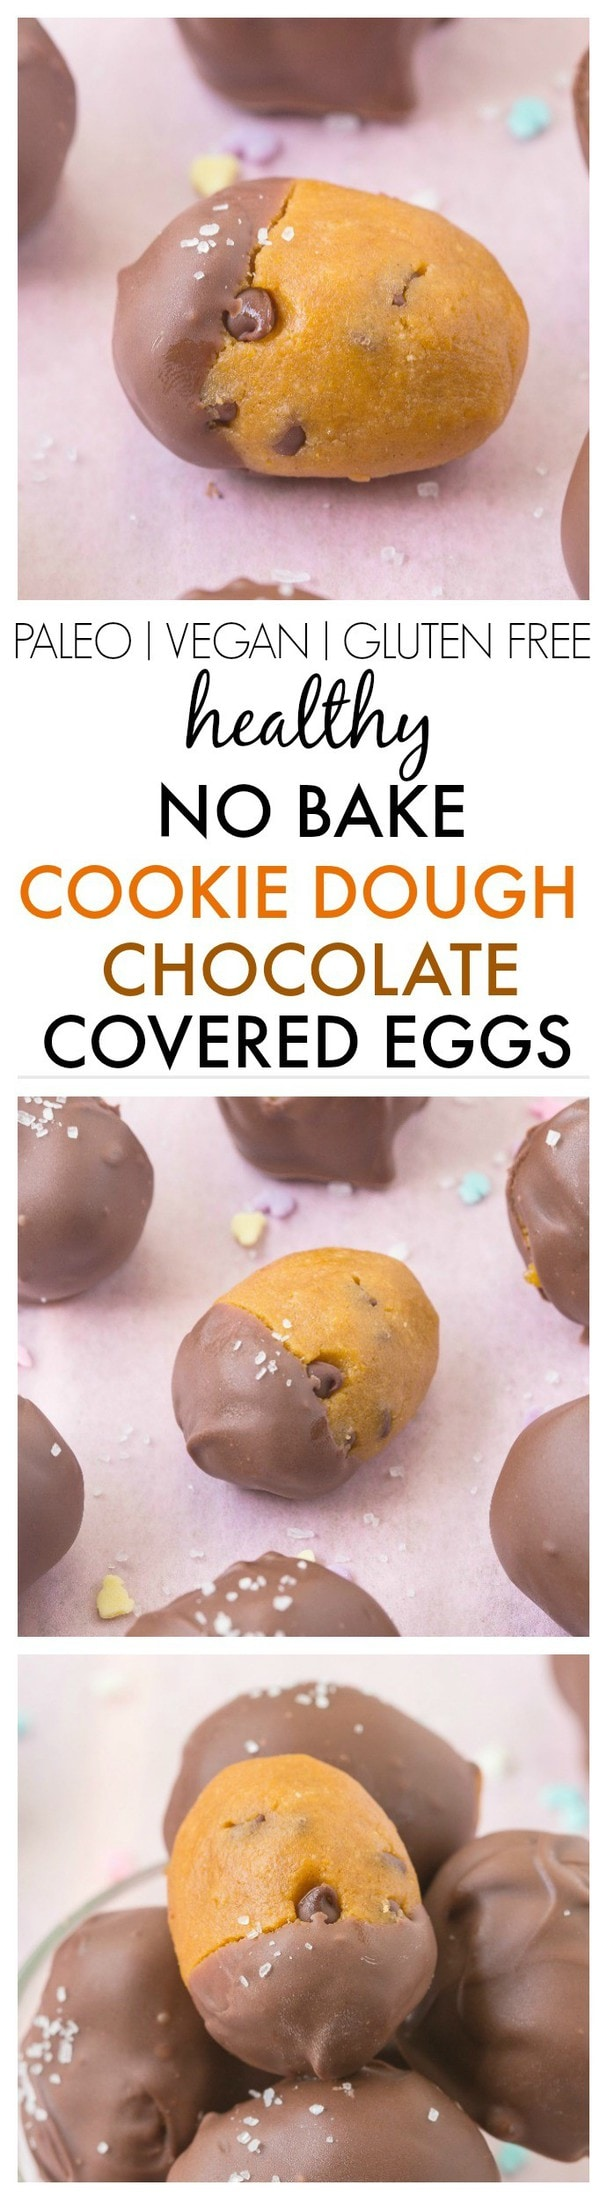 Healthy No Bake Cookie Dough Chocolate Covered Eggs- Accidentally healthy and SO easy- A fudgy cookie dough centre and a chocolate coating- NO butter, sugar or grains! {vegan, gluten free, paleo recipe}- thebigmansworld.com